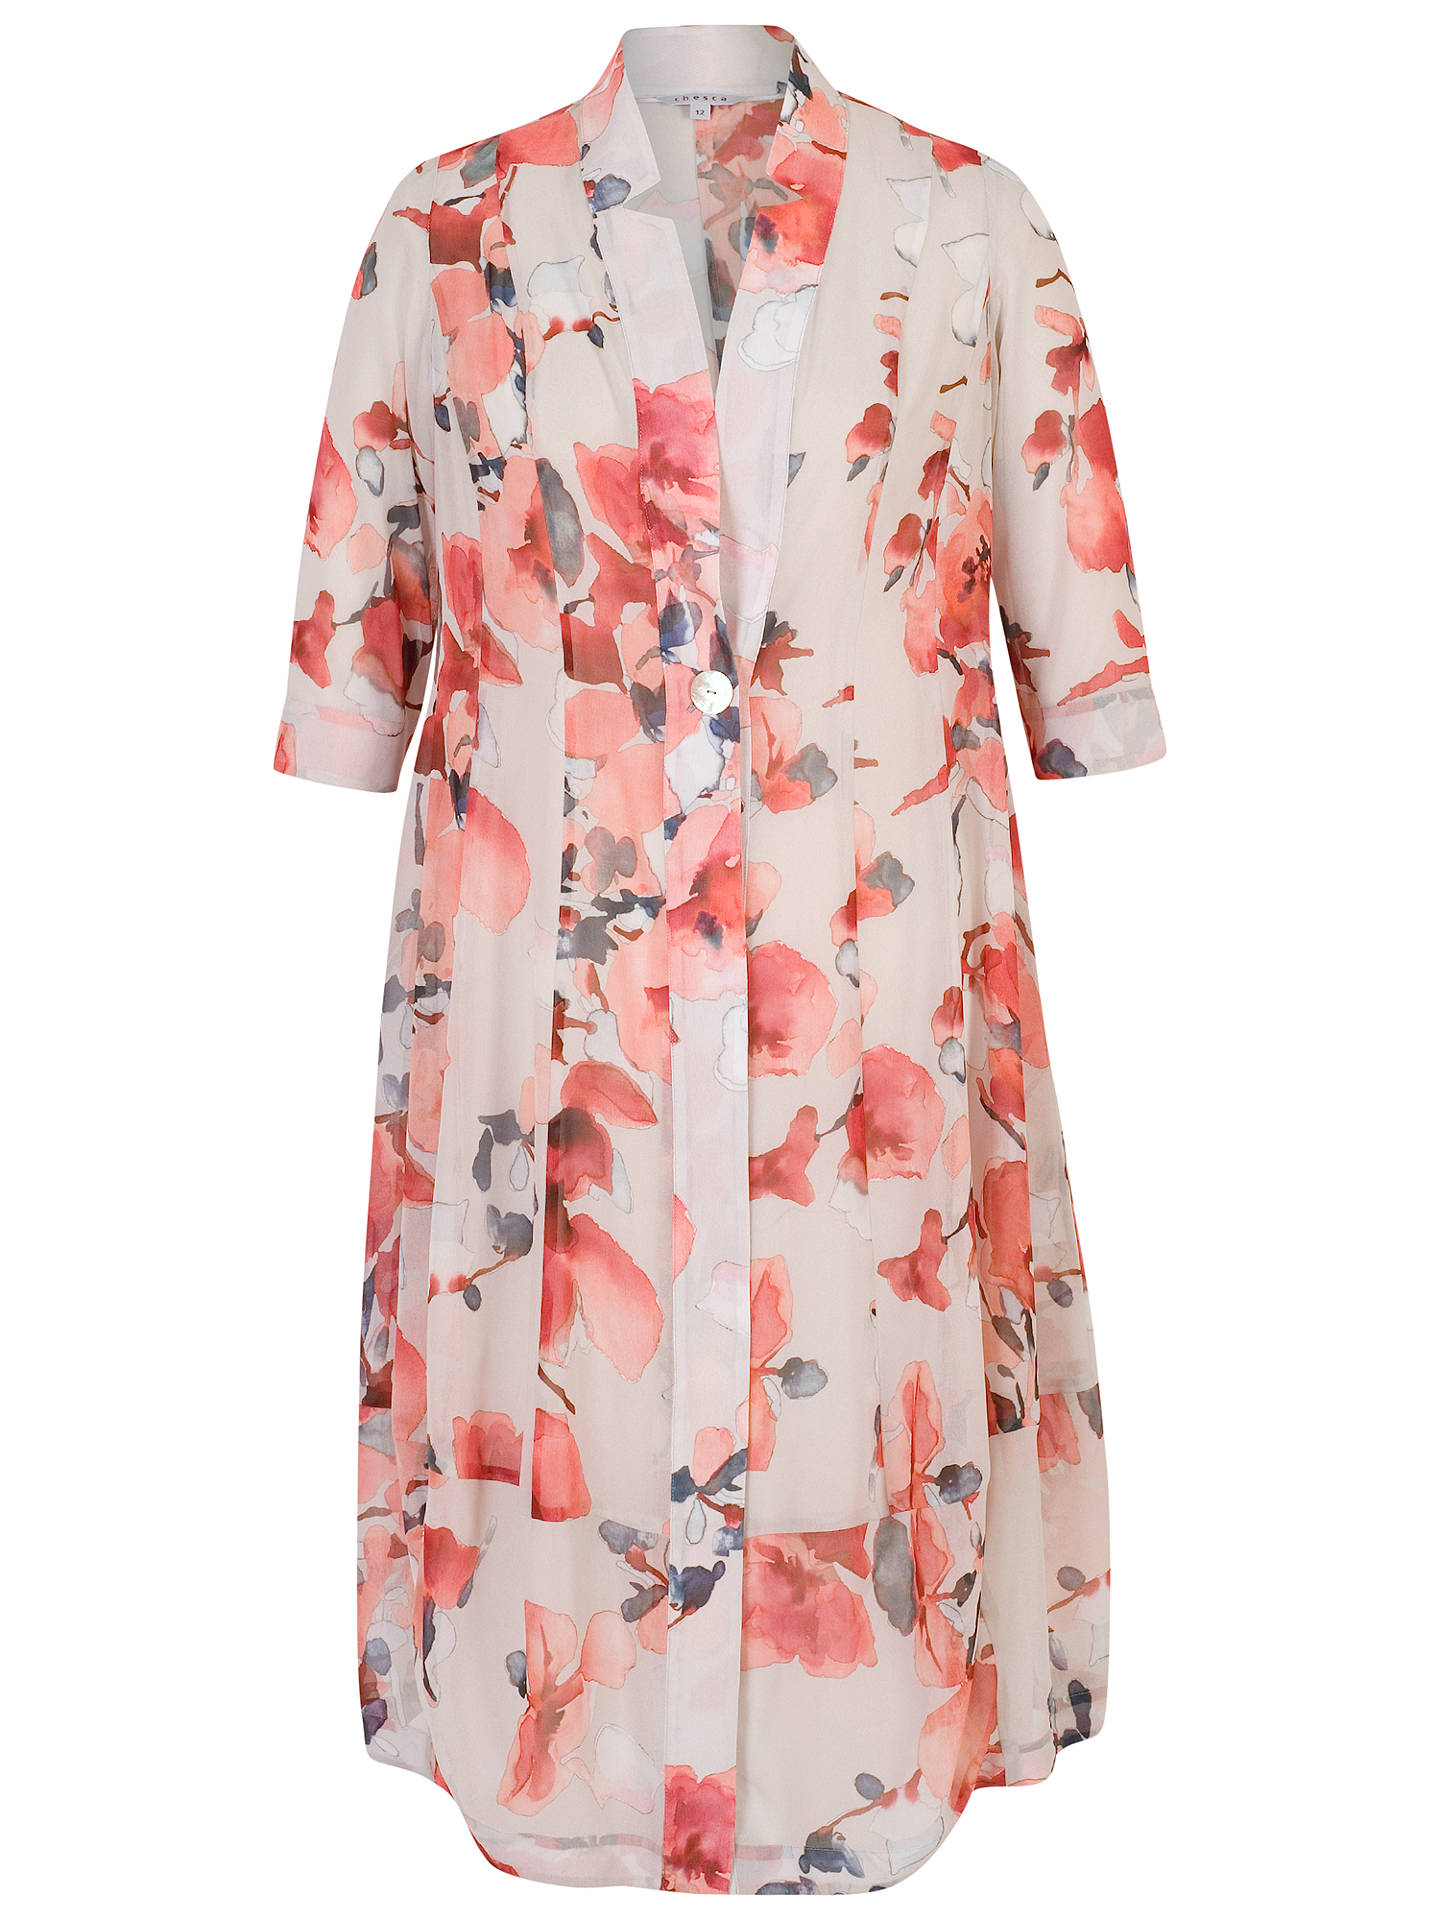 BuyChesca Floral Chiffon Coat, Silver Grey/Red, 16 Online at johnlewis.com